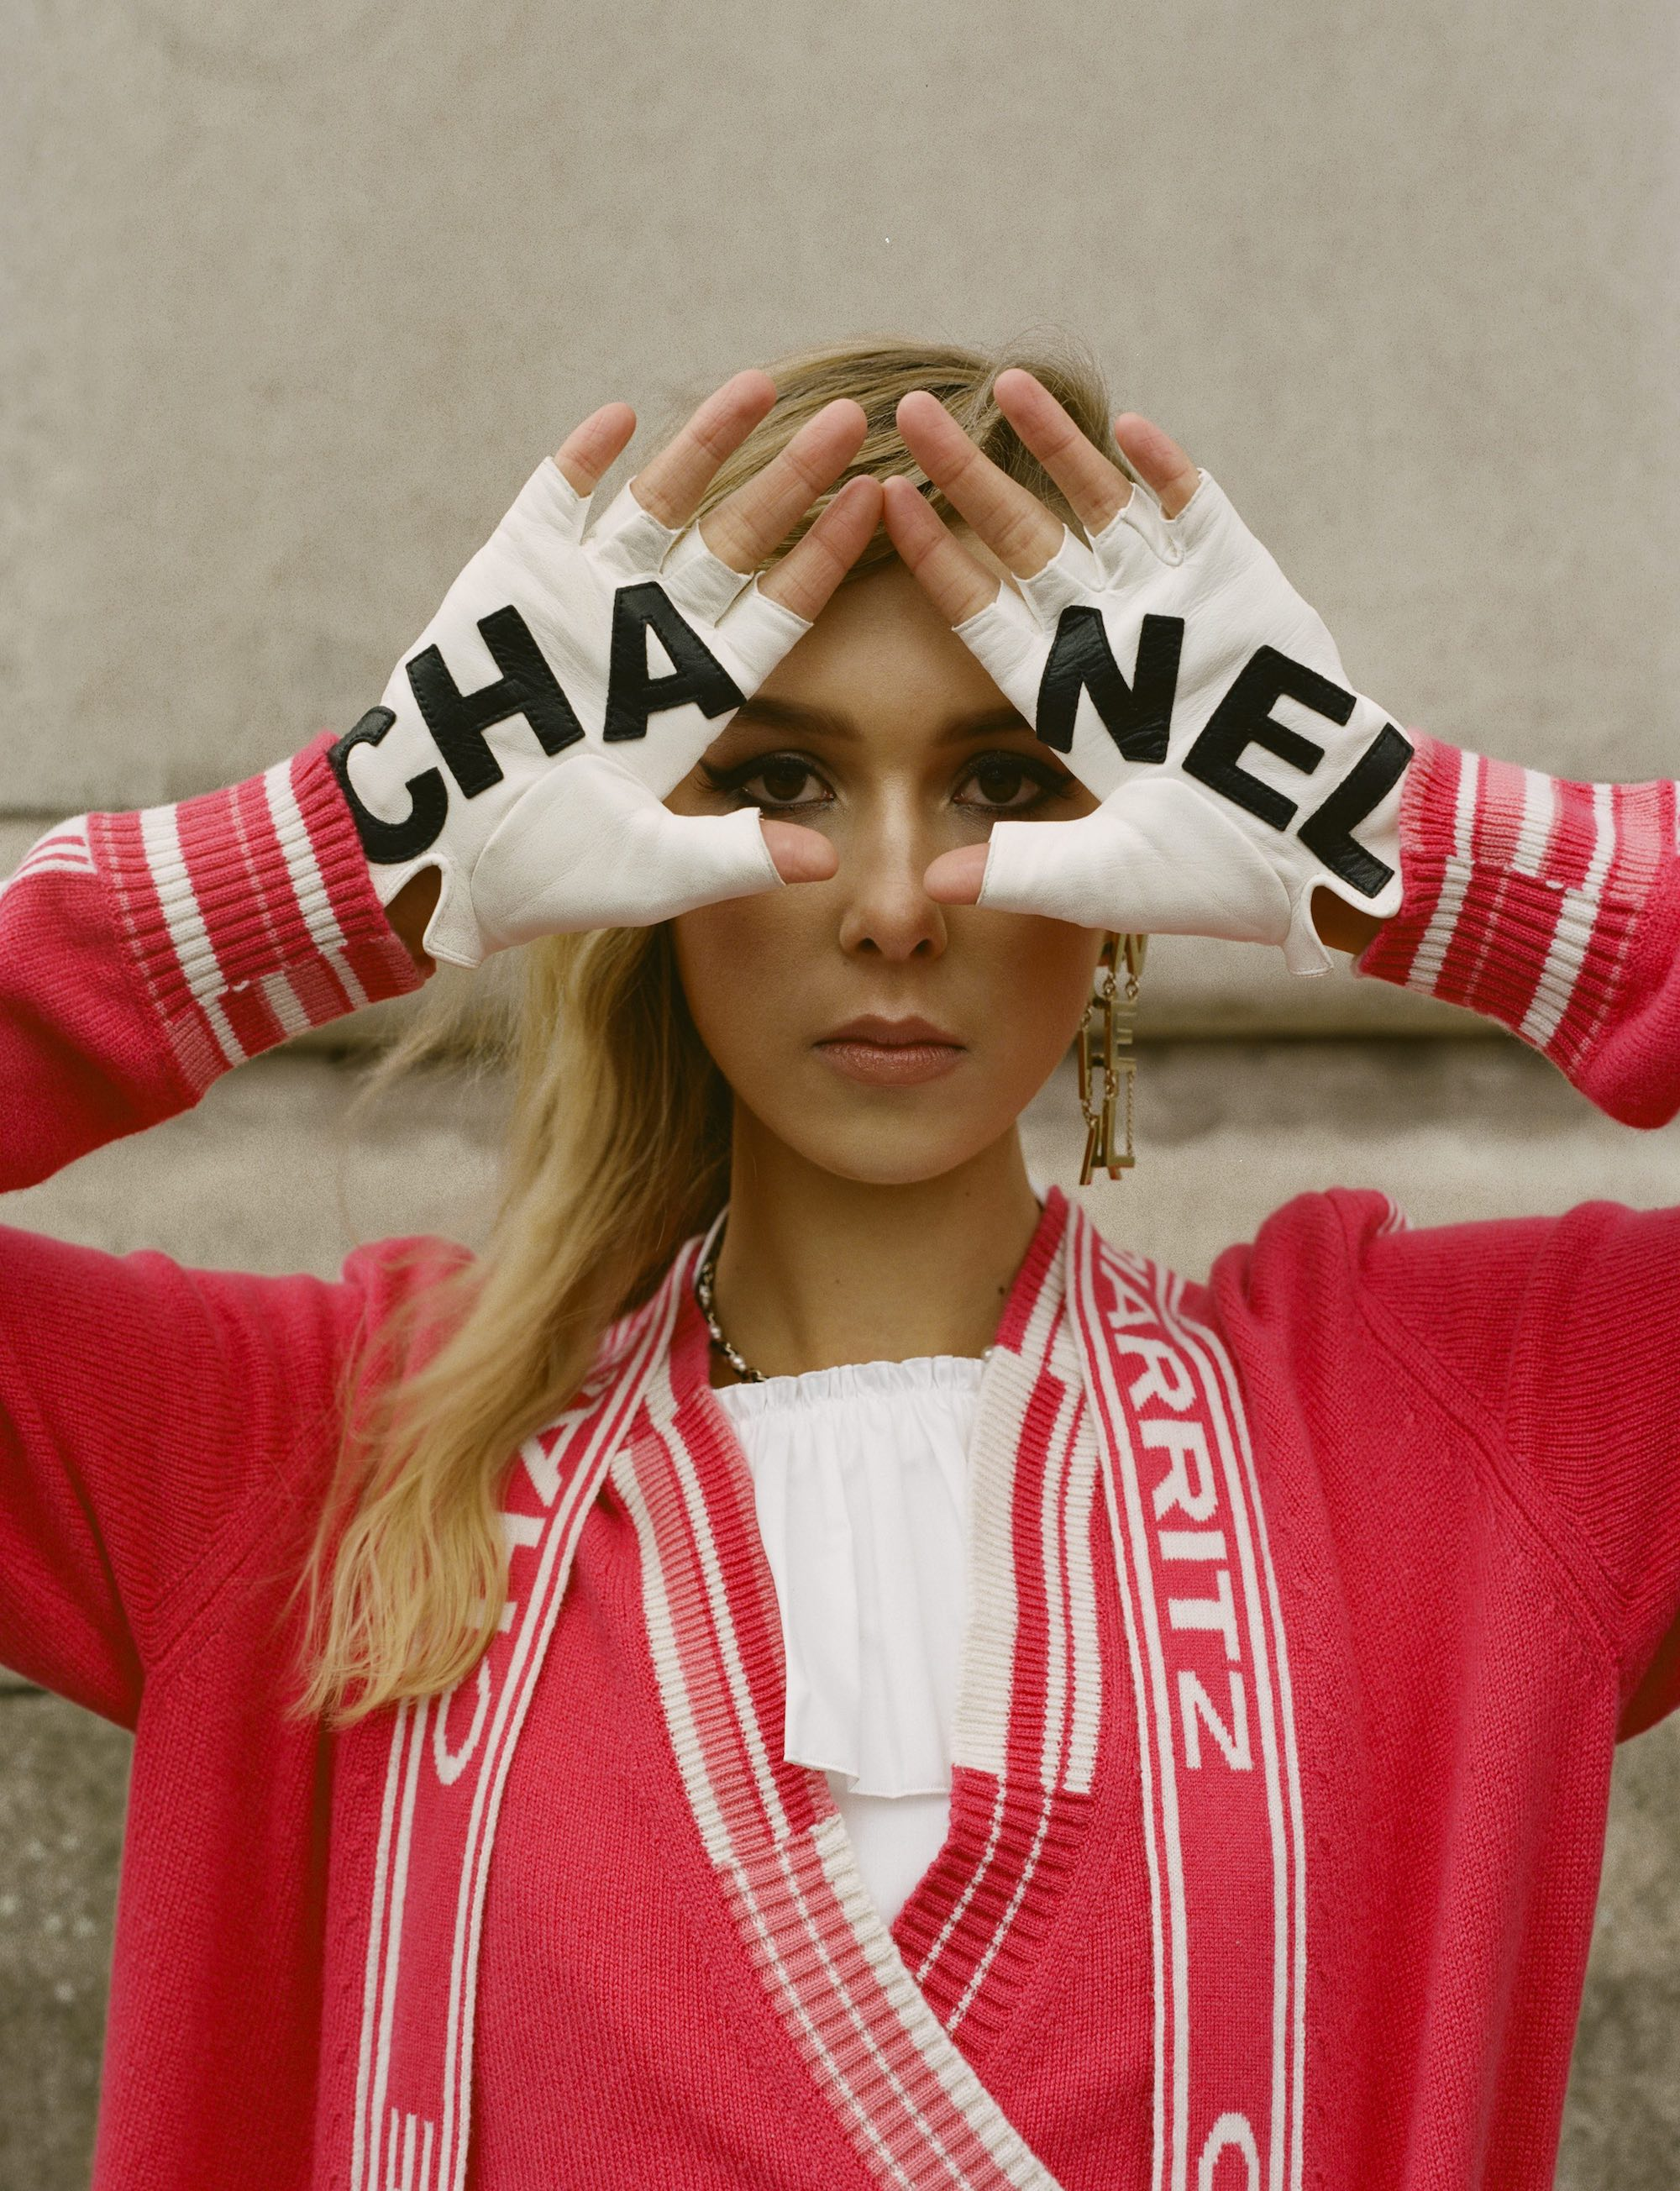 Chanel SS19 fashion editorial in Wonderland Spring 19 issue red jumper